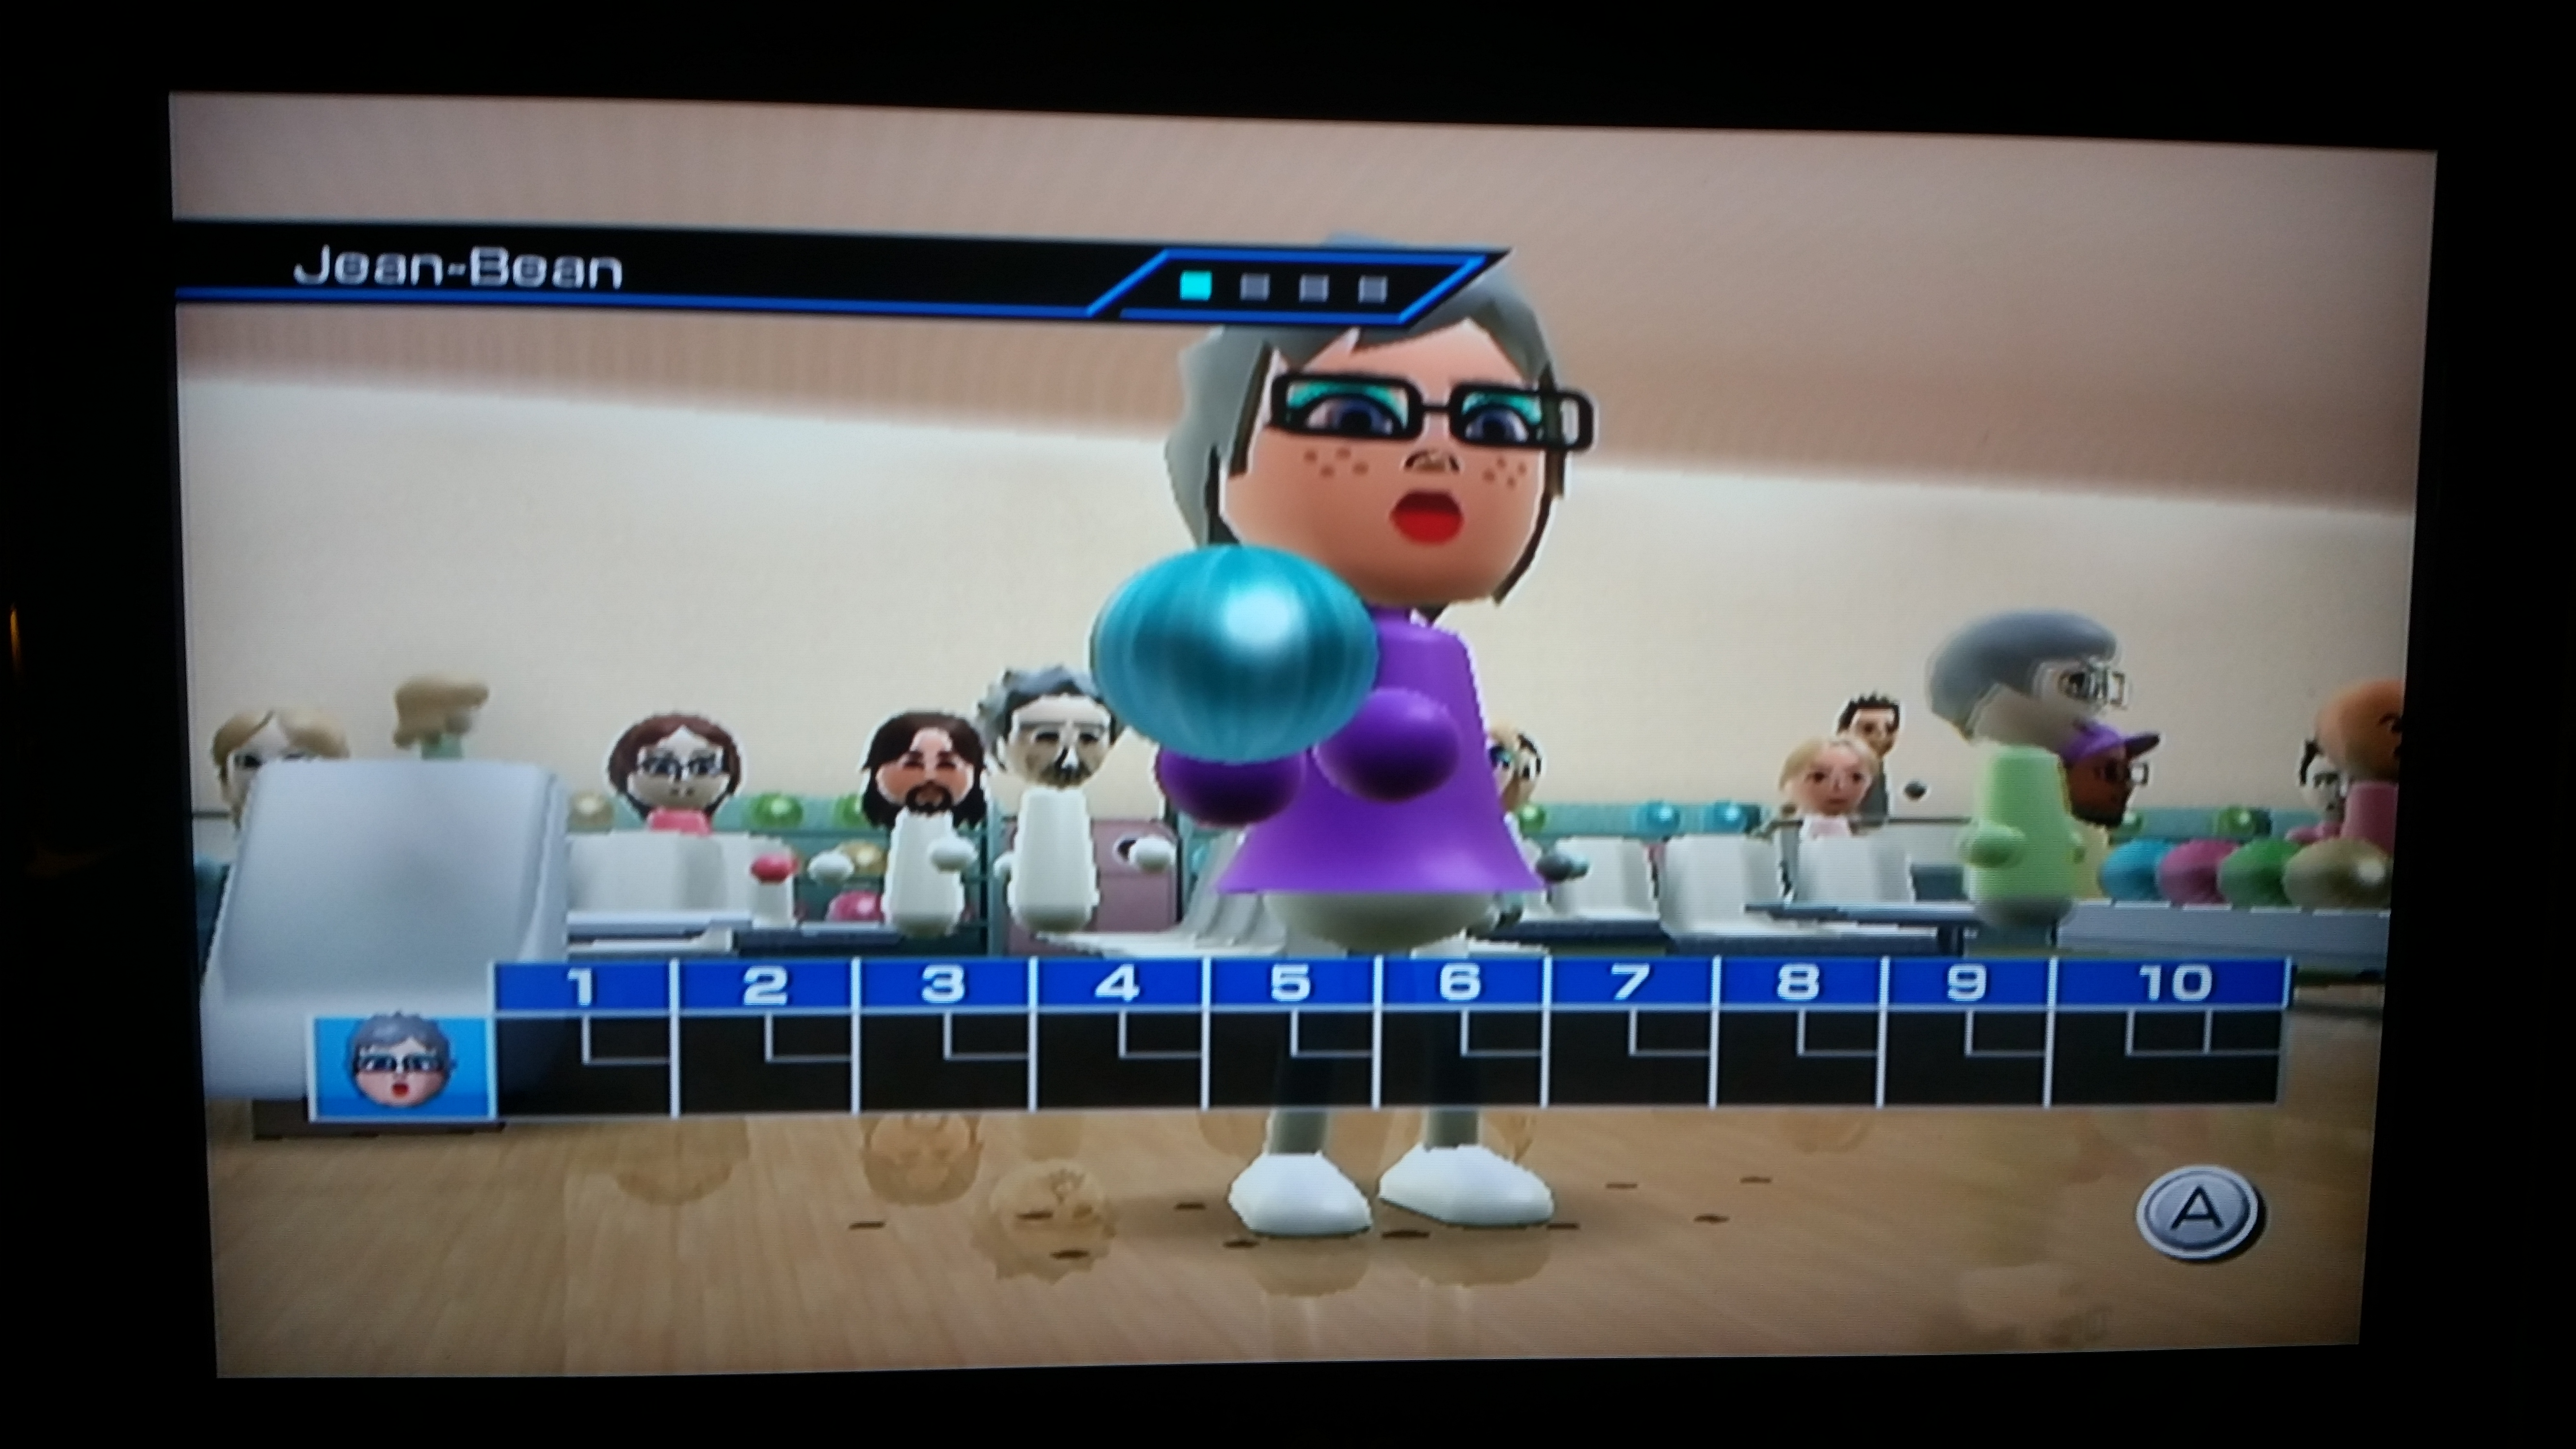 Screenshot of Jean's Mii ready to bowl, with various Miis in the background. Wii Bowling, BANDAI NAMCO, Nintendo, 2006.